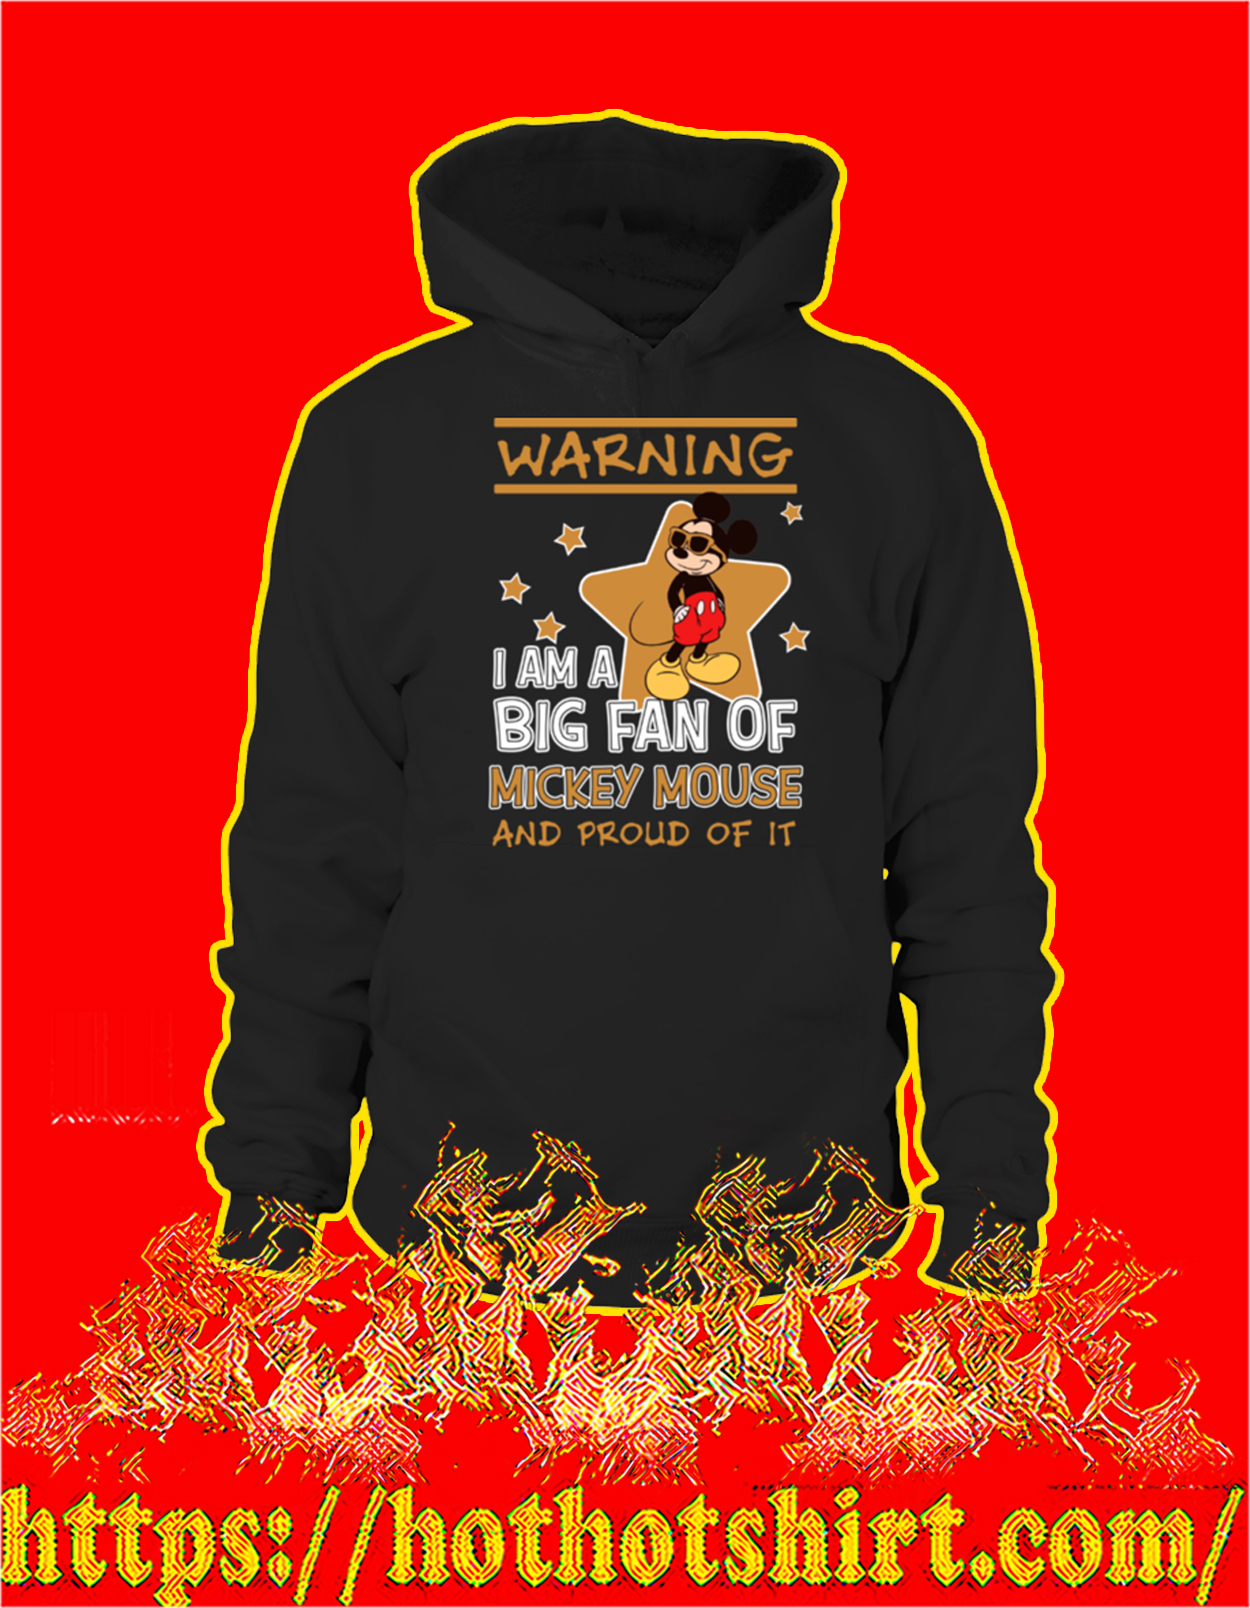 Warning I'm a big fan of mickey mouse and proud of it hoodie